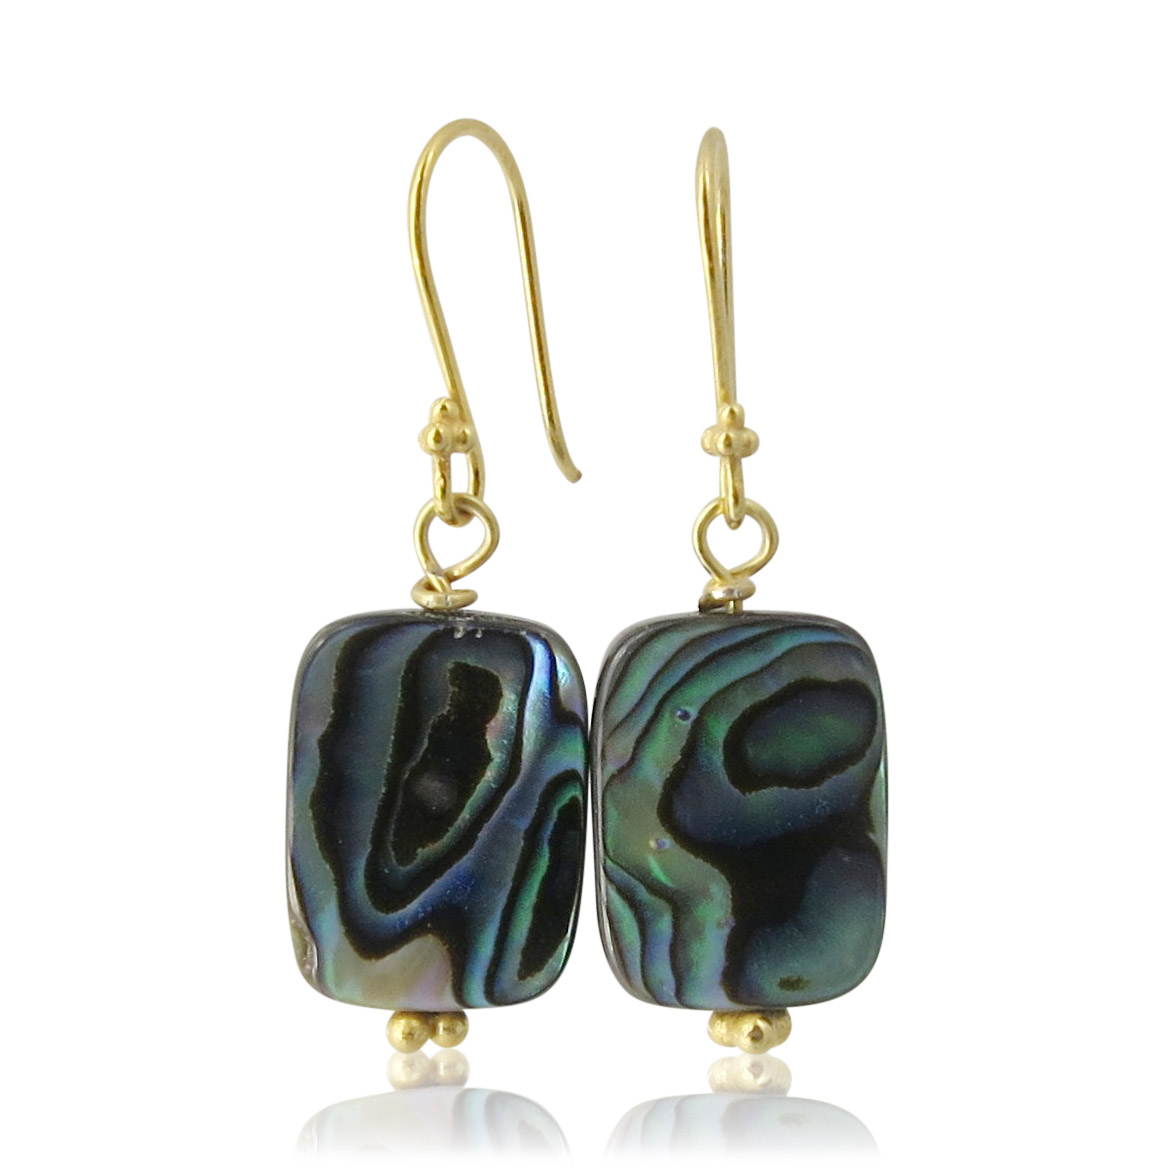 Atelier Sud - Abalone Earrings